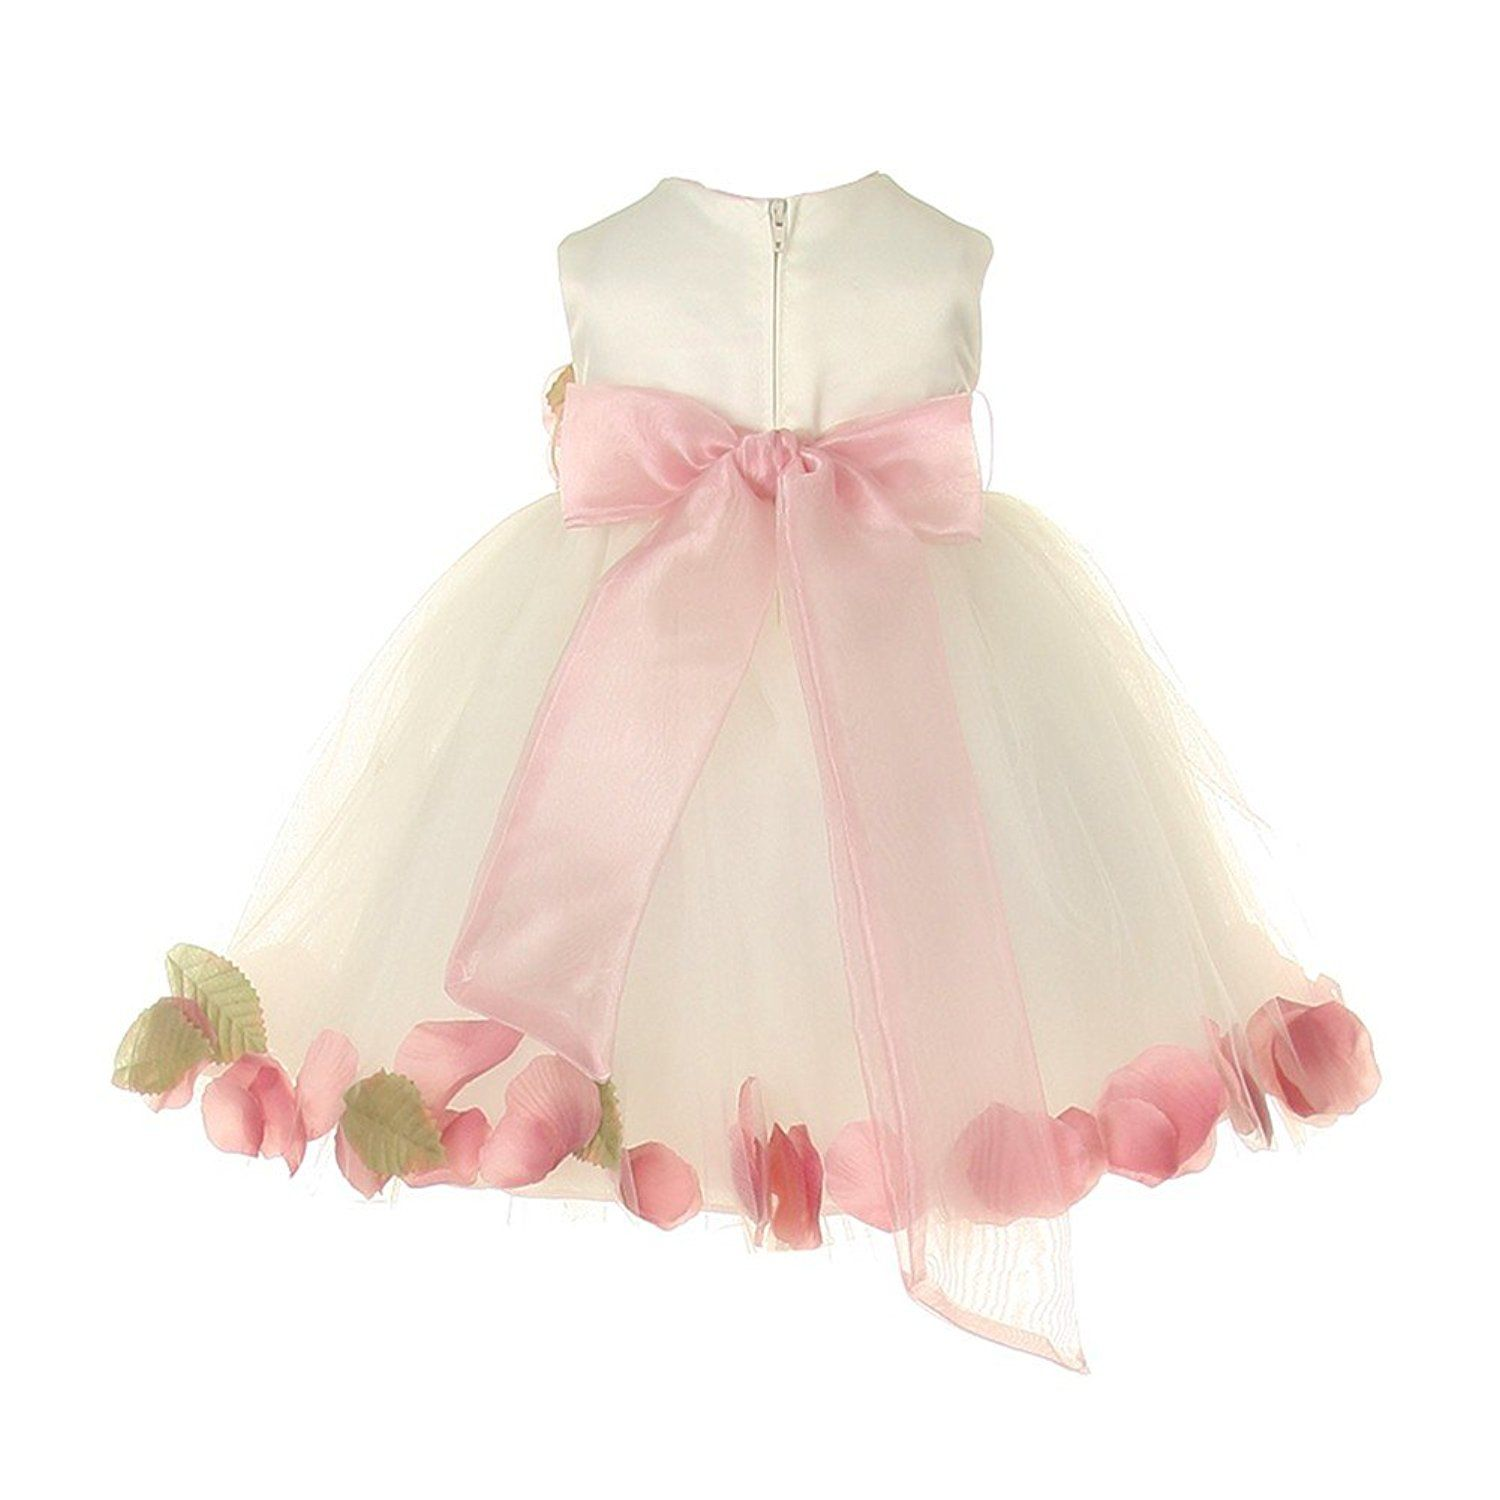 c00e43dcdaa Baby Girls Ivory Dusty Rose Petal Adorned Satin Tulle Flower Girl Dress 6- 24M  Amazon.co.uk  Clothing